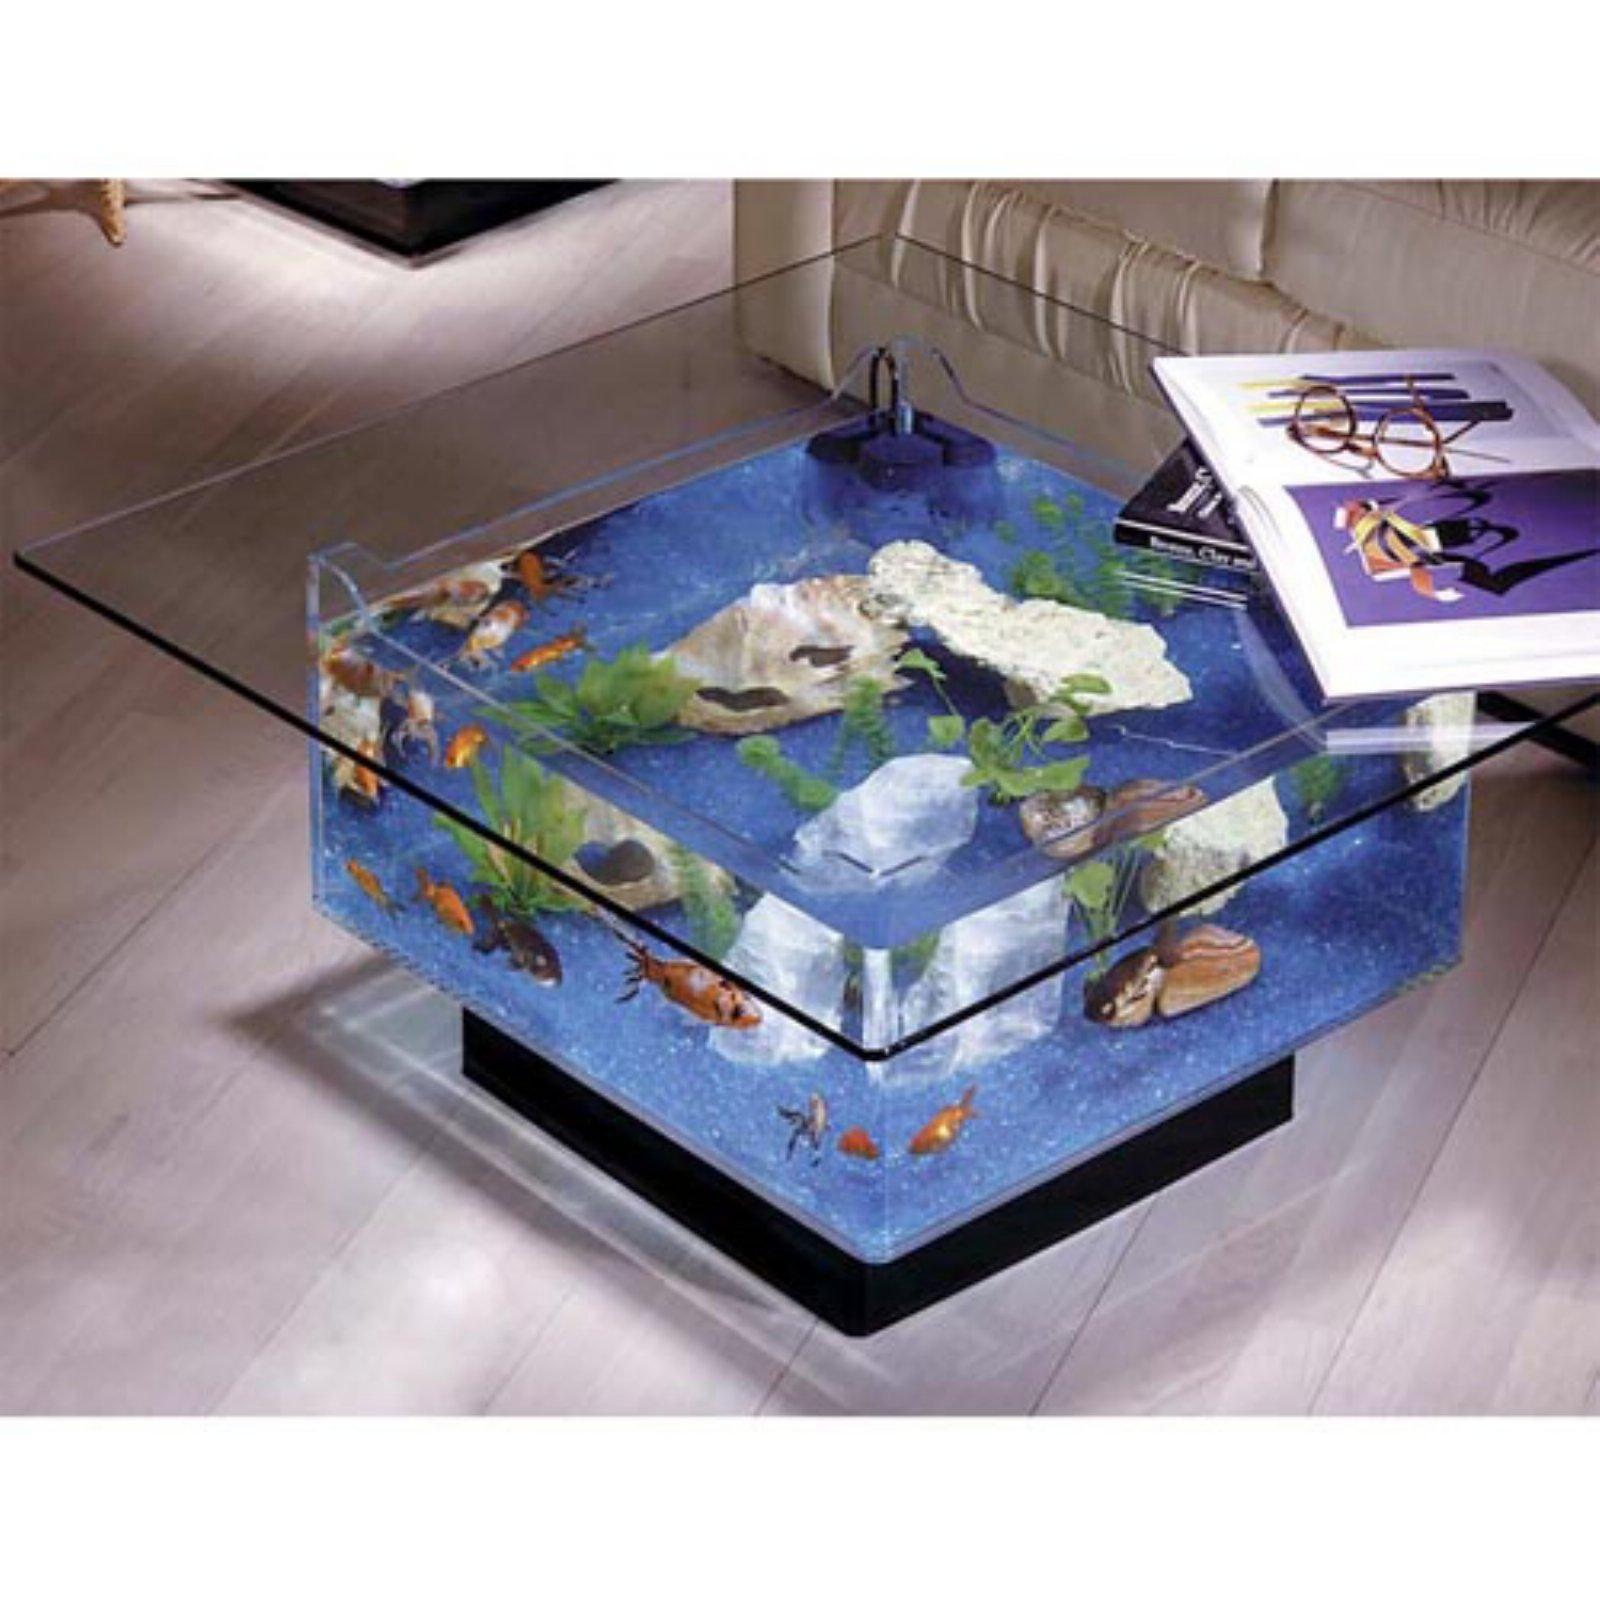 Aqua Square Coffee Table 25 Gallon Aquarium Walmart